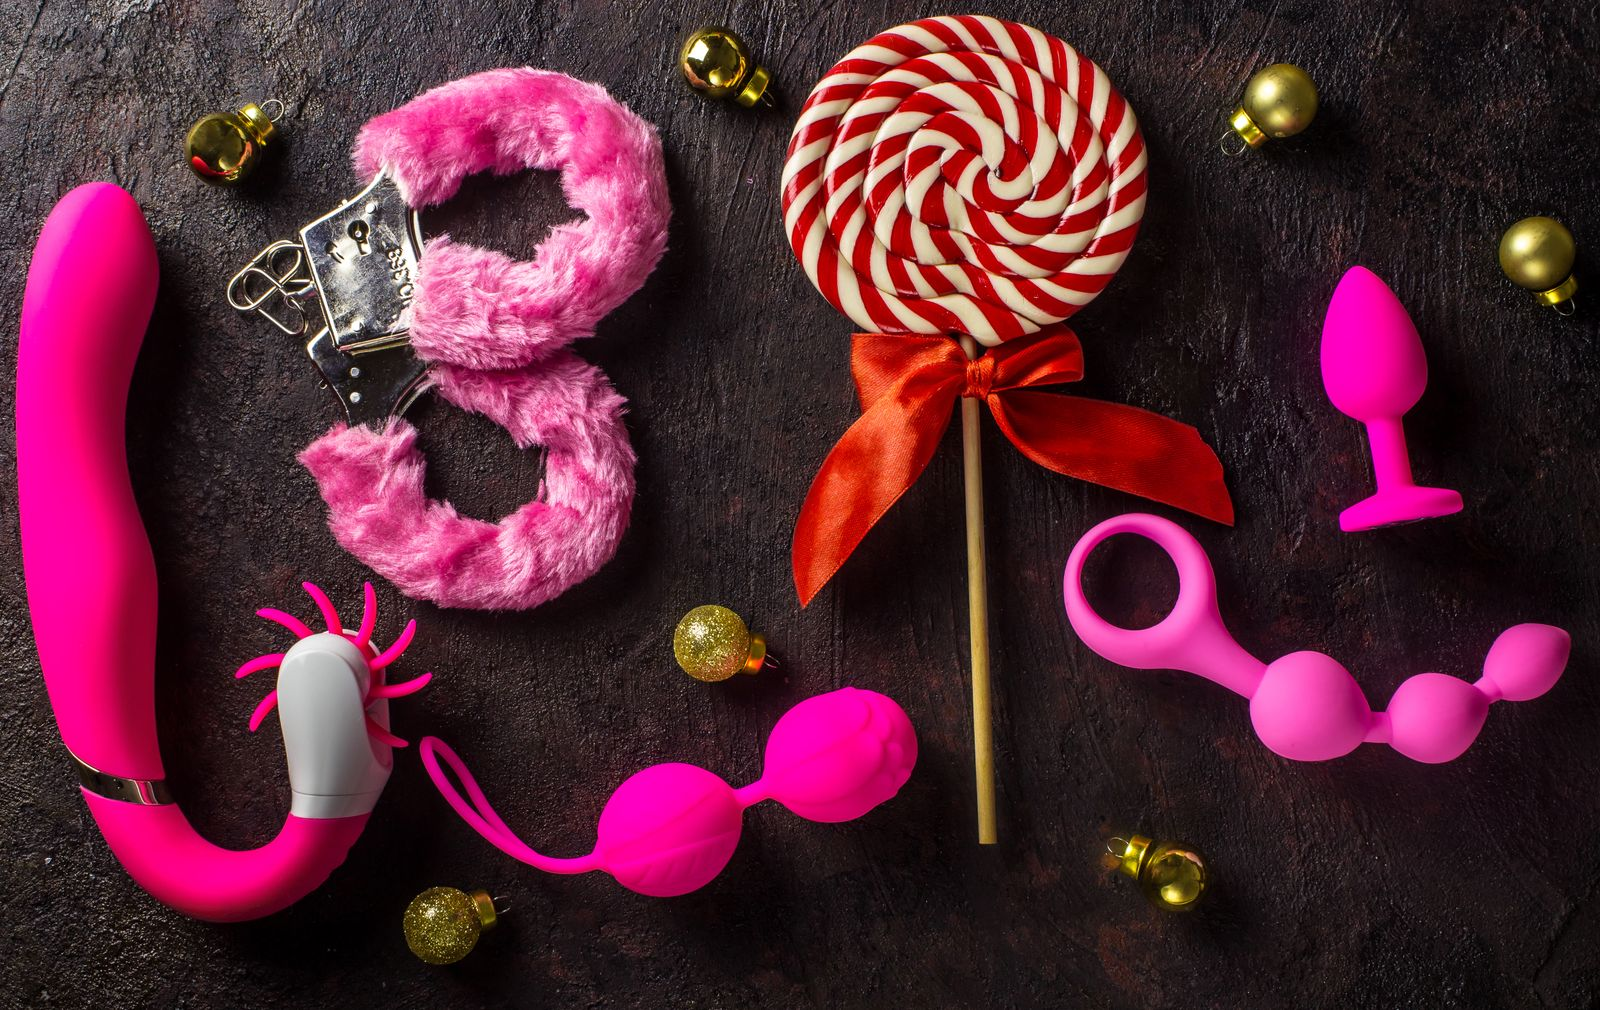 Various sex toys (anal balls, vibrator, fur handcuffs and others), christmas balls and candy.